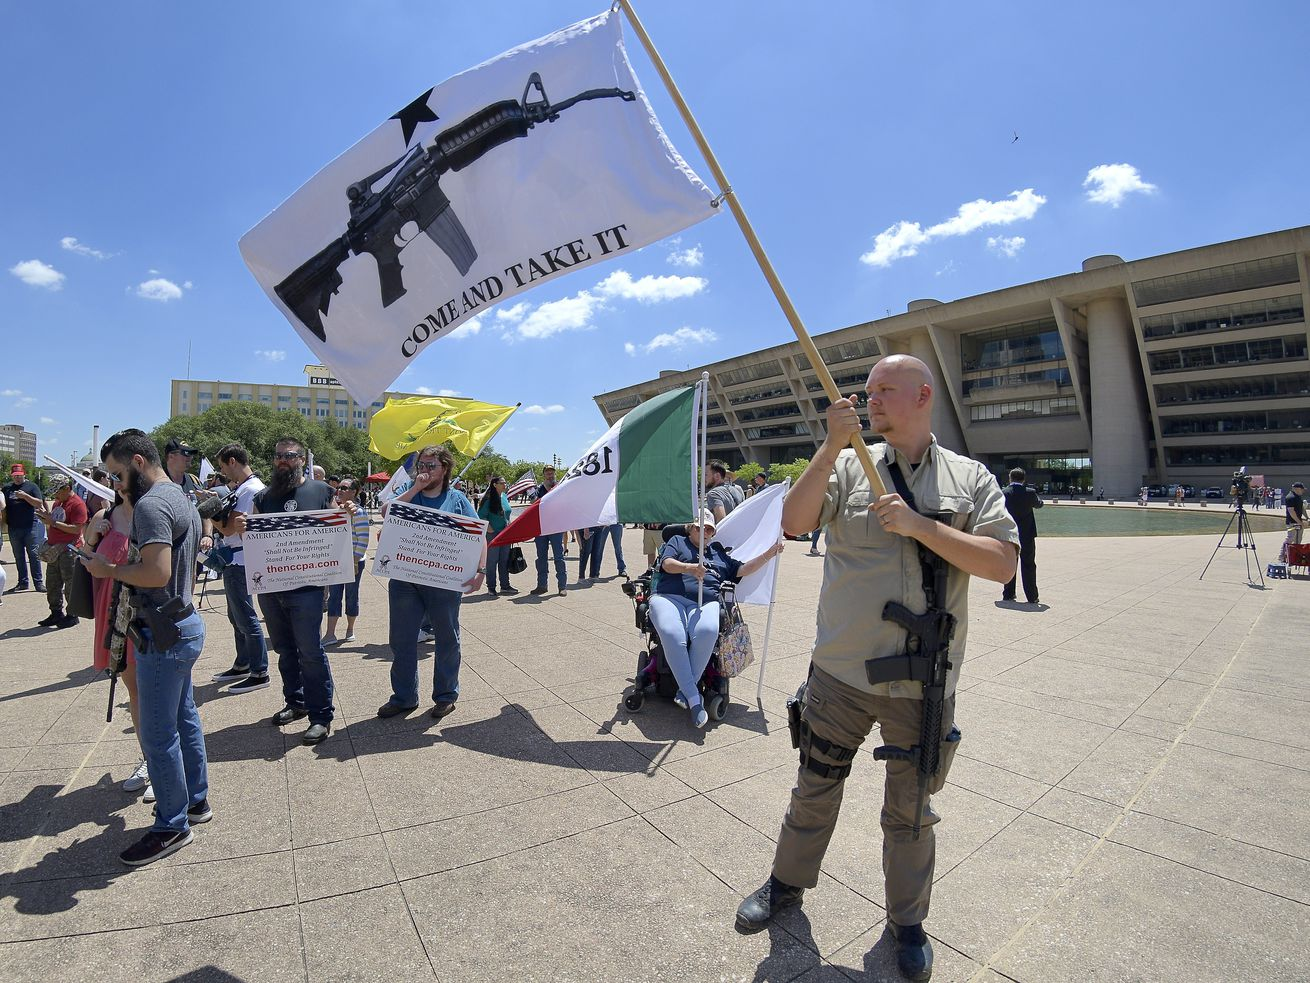 """A man with an AR-15 slung over his shoulder waves a flag depicting an assault rifle along with a message that reads """"Come and take it."""""""